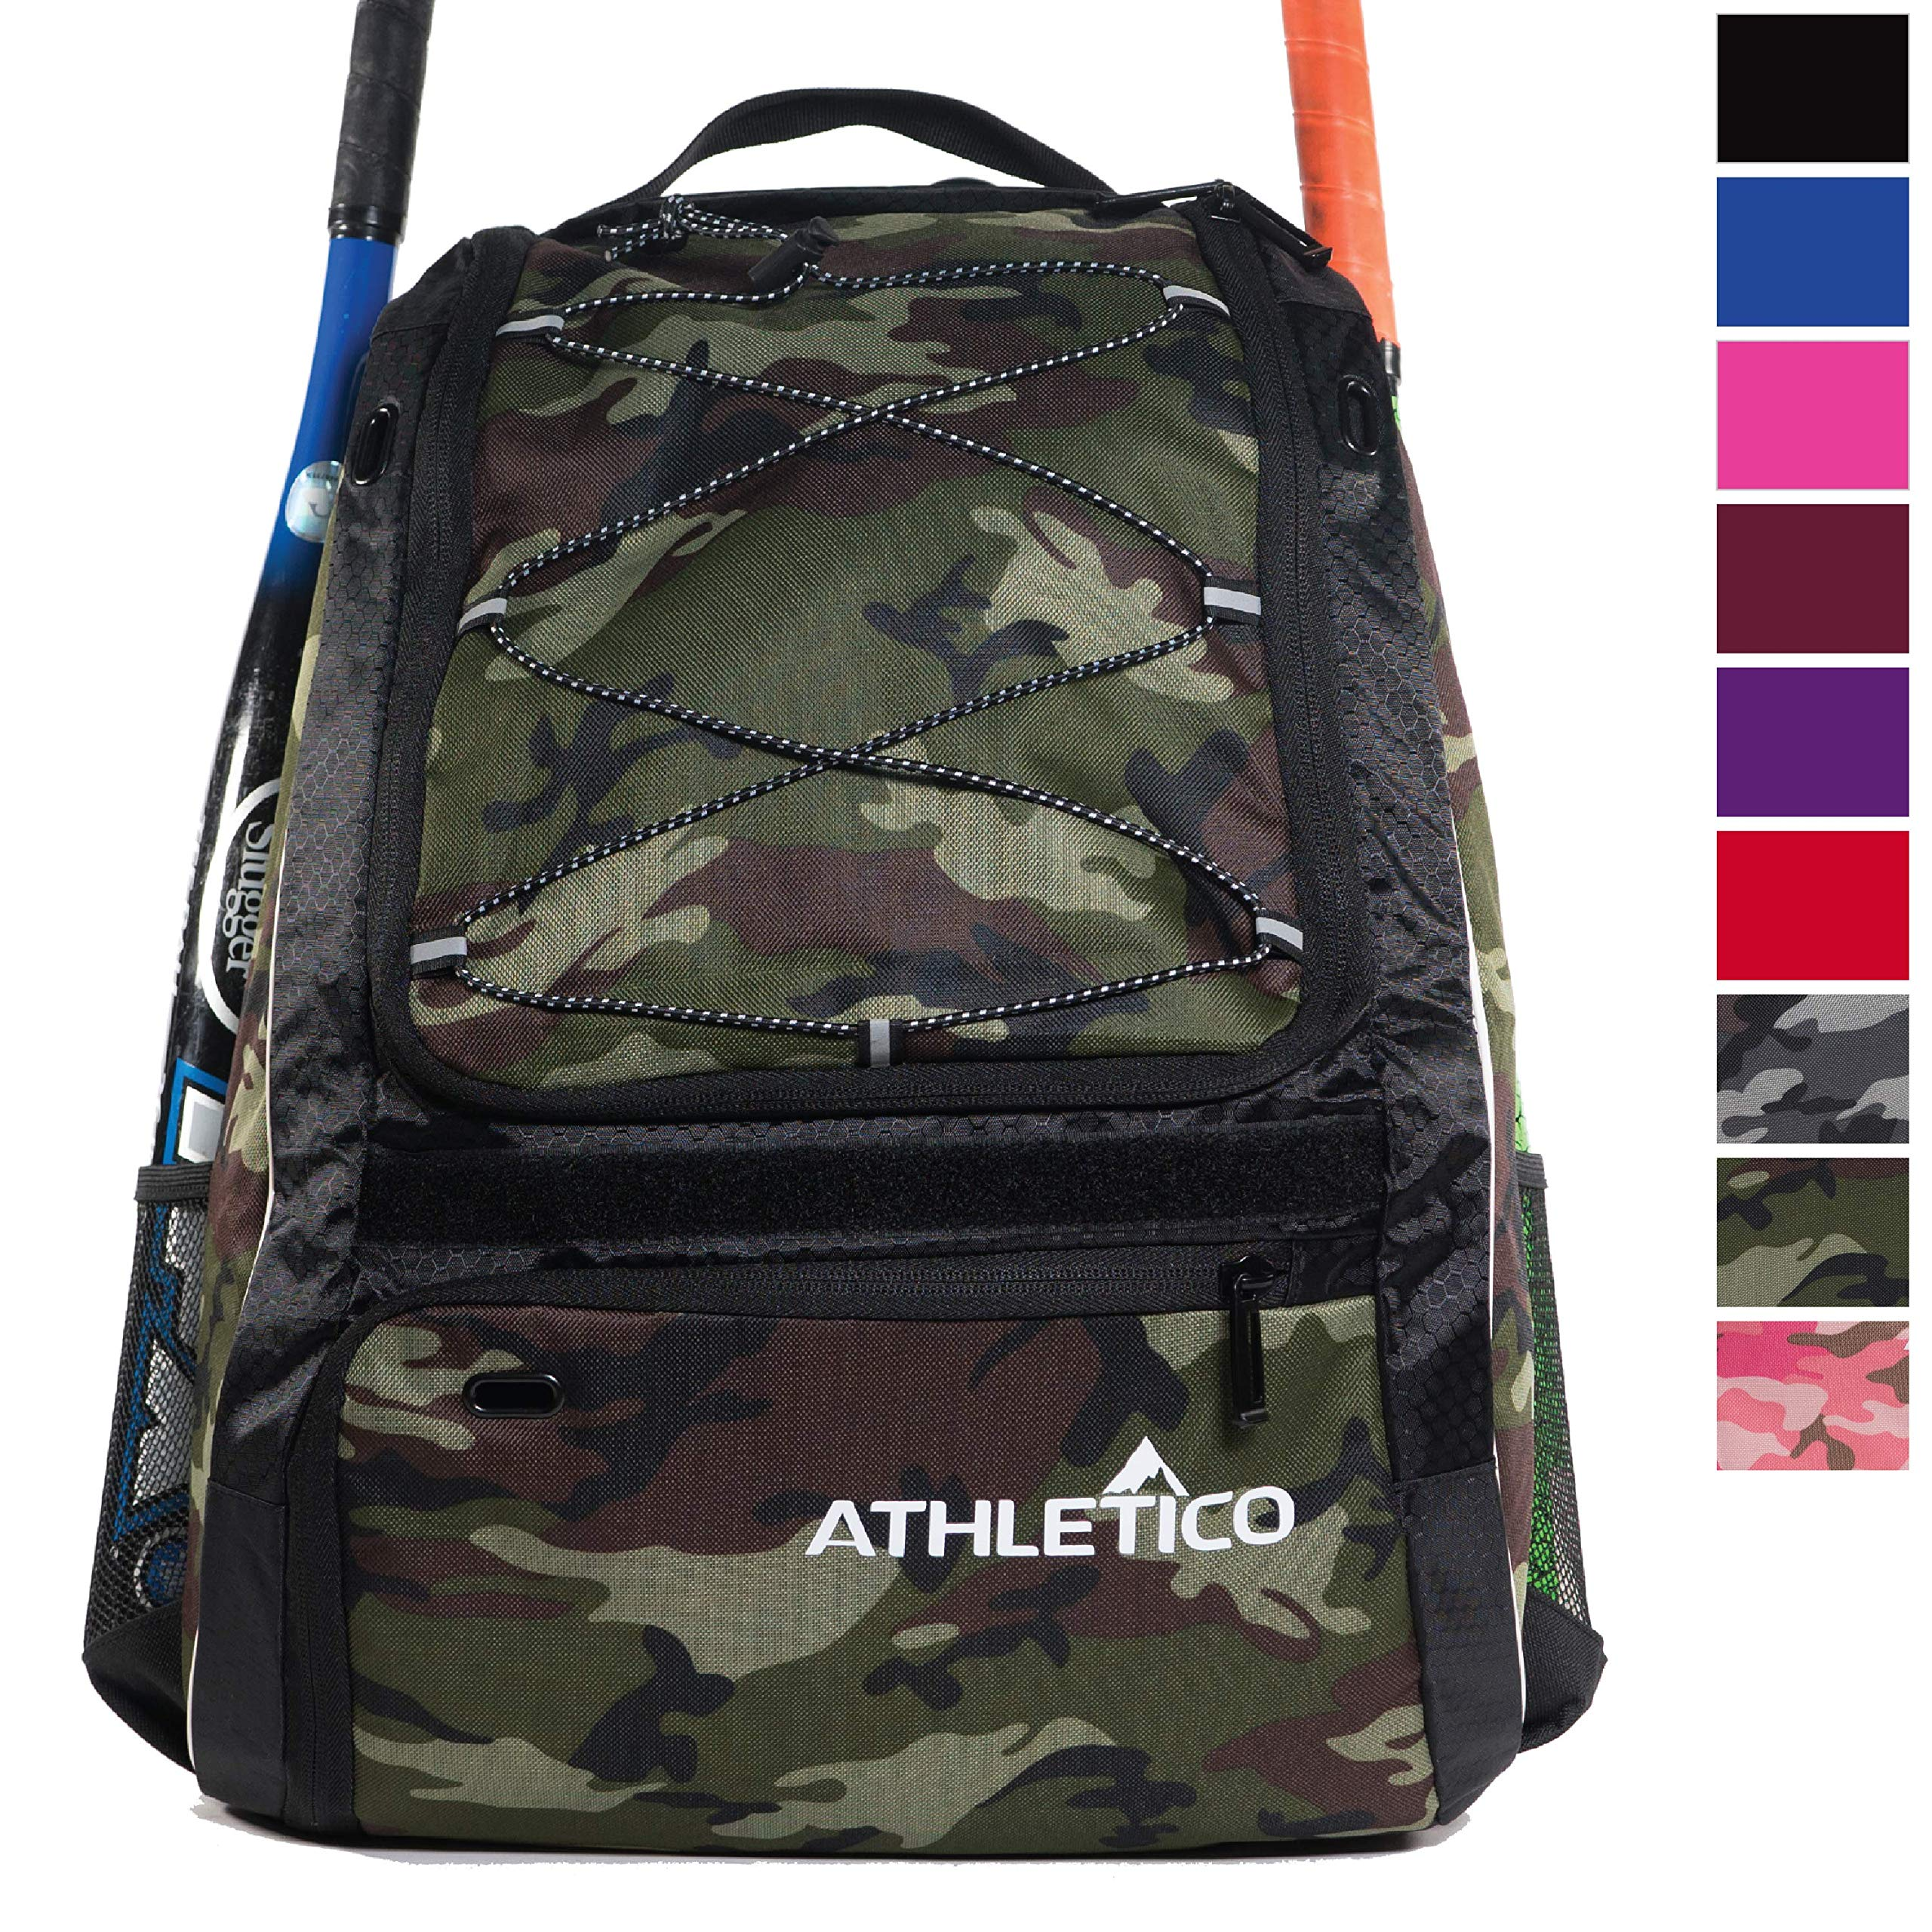 Athletico Baseball Bat Bag - Backpack for Baseball, T-Ball & Softball Equipment & Gear for Youth and Adults | Holds Bat, Helmet, Glove, Shoes |Shoe Compartment & Fence Hook (Green Camo) by Athletico